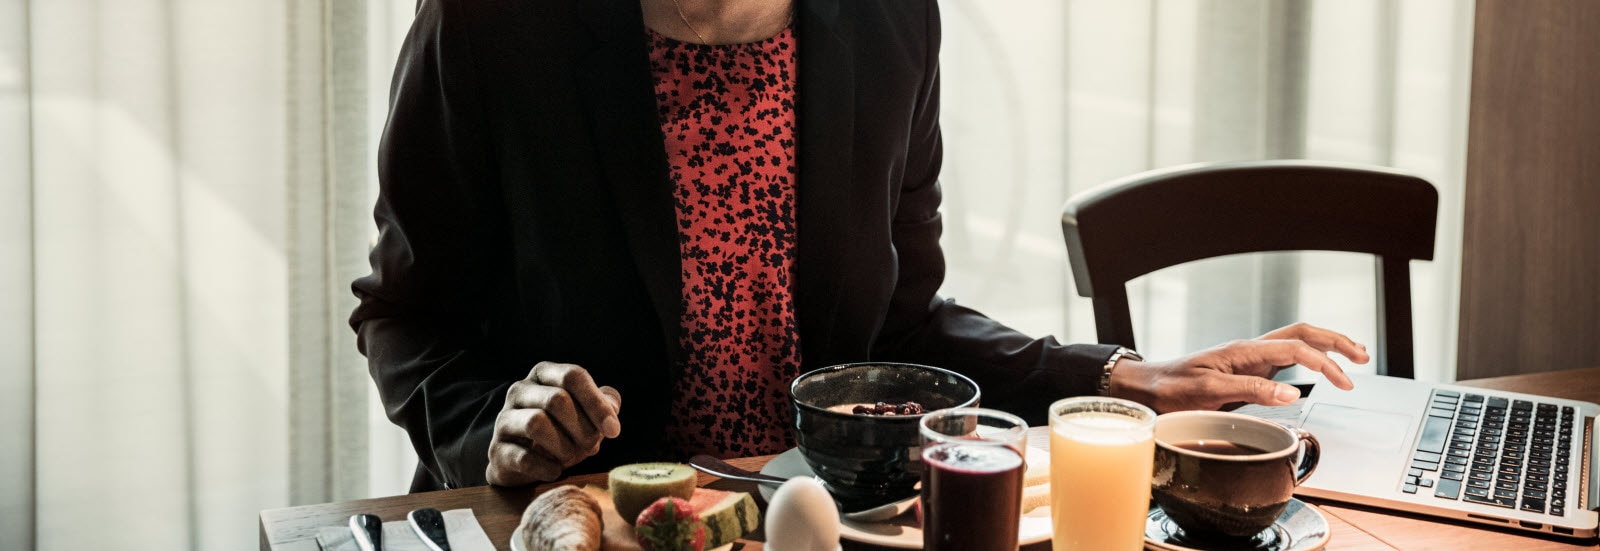 Woman reading at a computer when eating breakfast